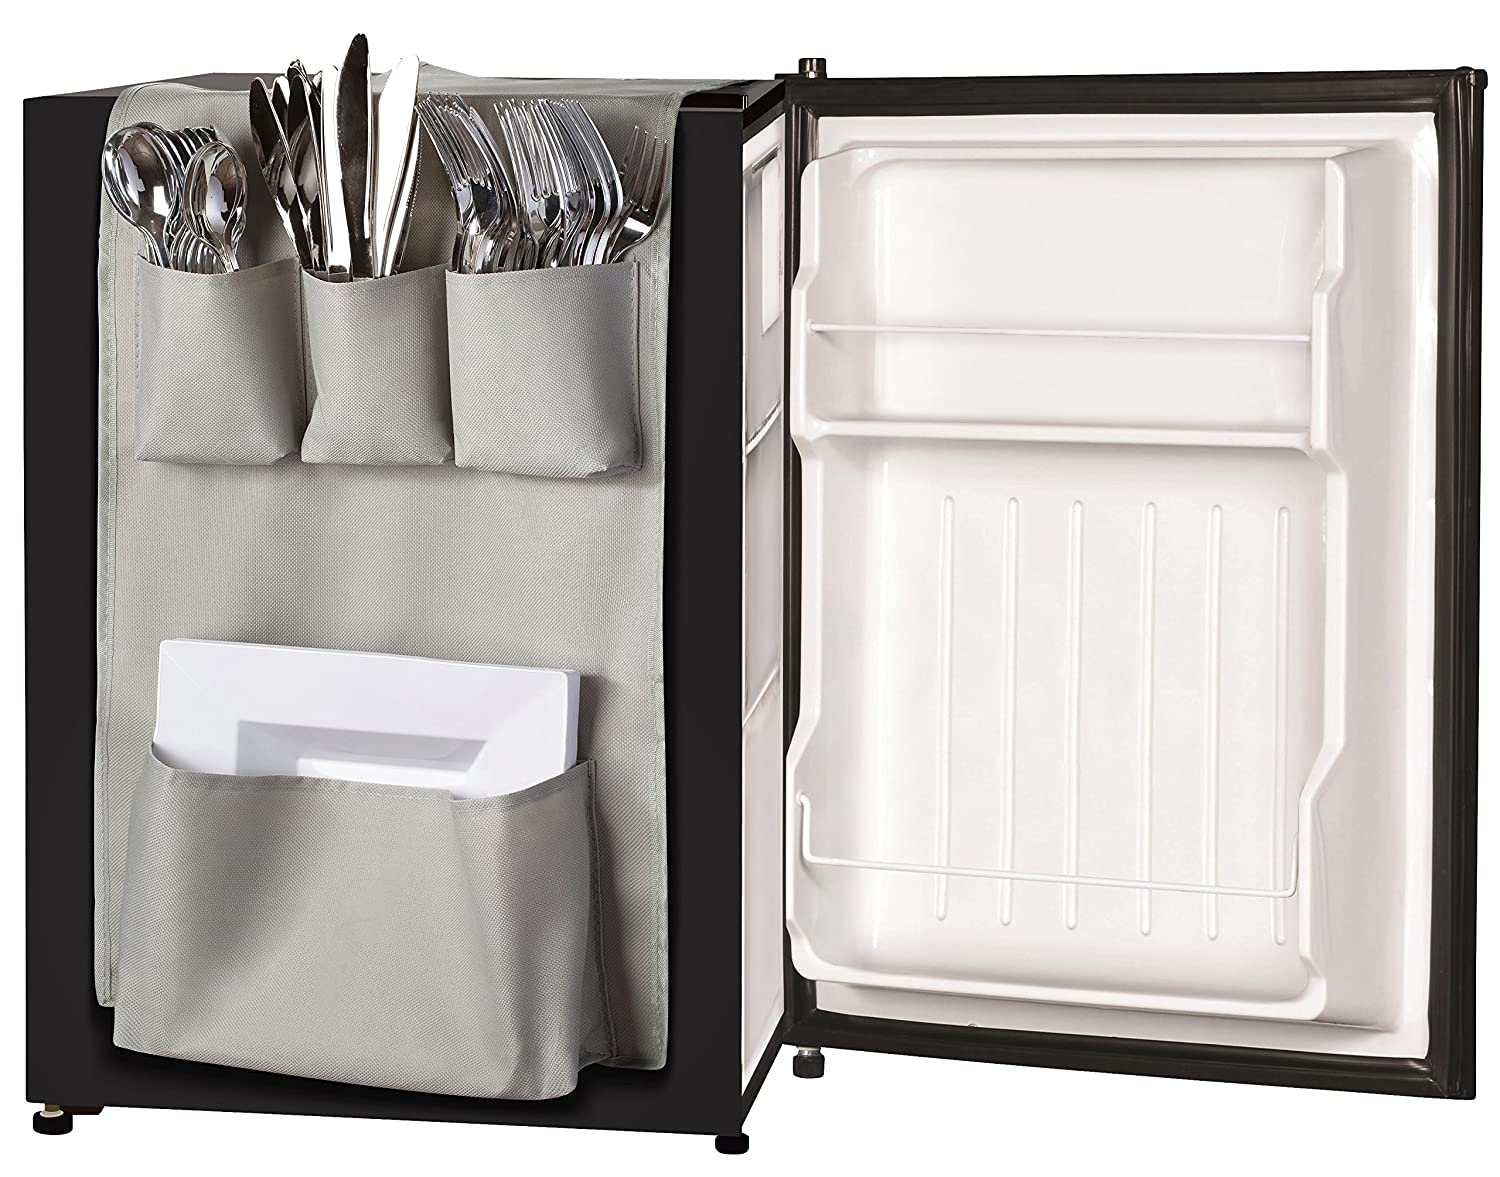 Classic Design - Over the Door Pantry Closet Organizer, Dorm and office Over the Fridge Caddy Organizer, Storage and Paper Goods Organizer